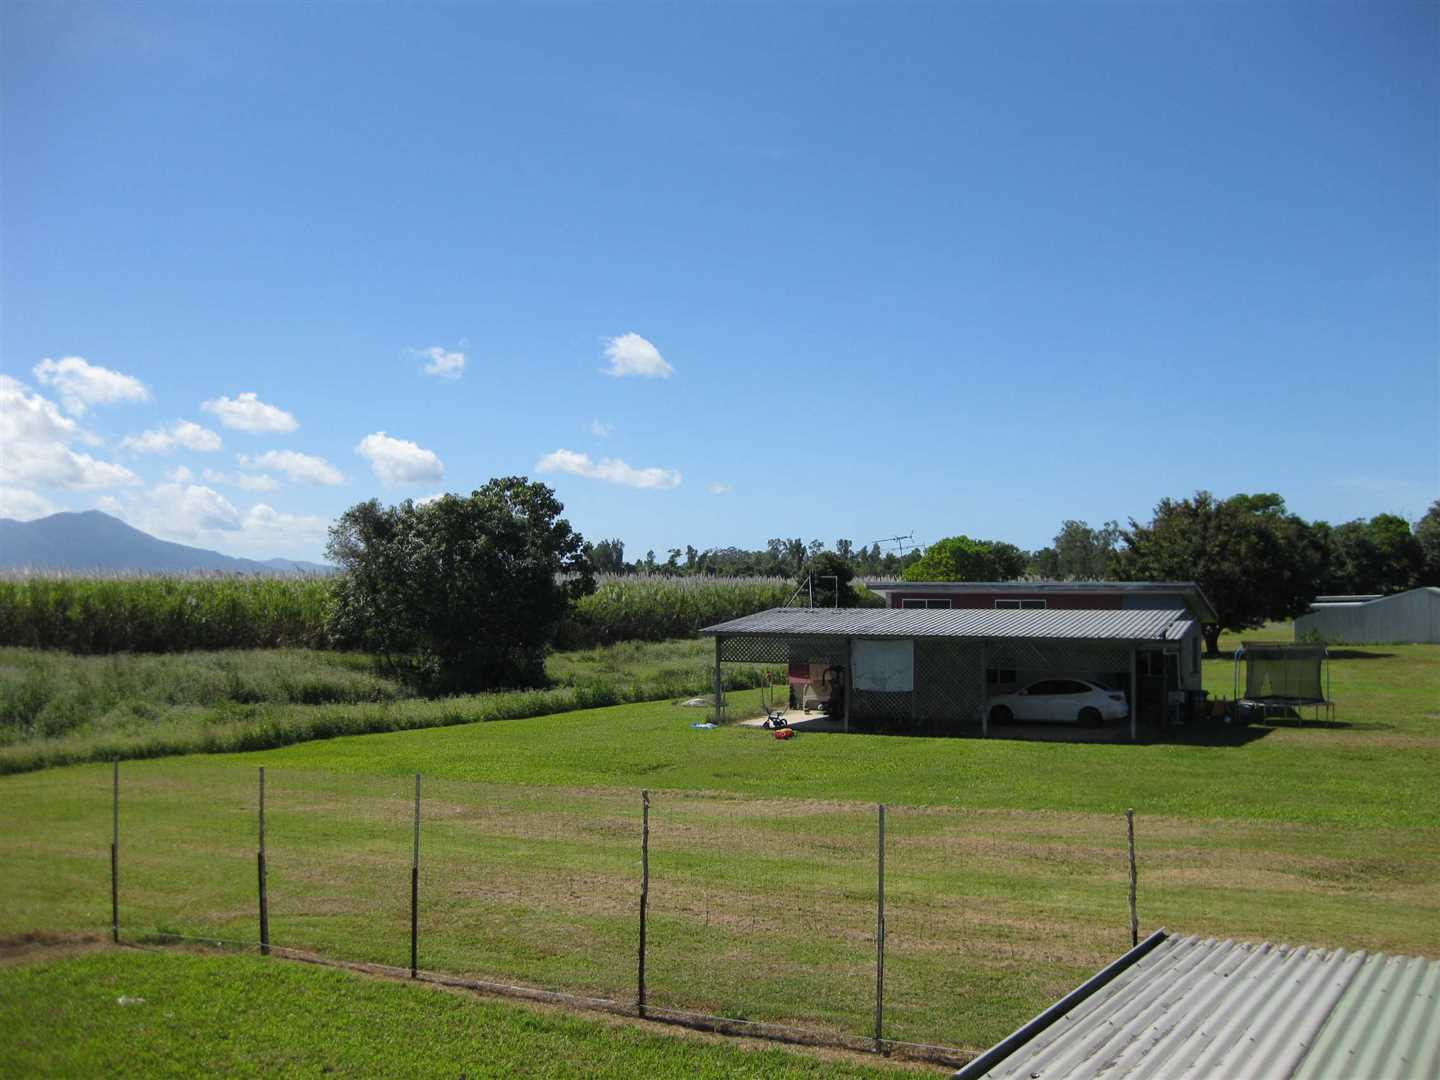 View from part of high-set home back verandah showing part of property and separate split level home. Fence shown excluded, property of the tenant